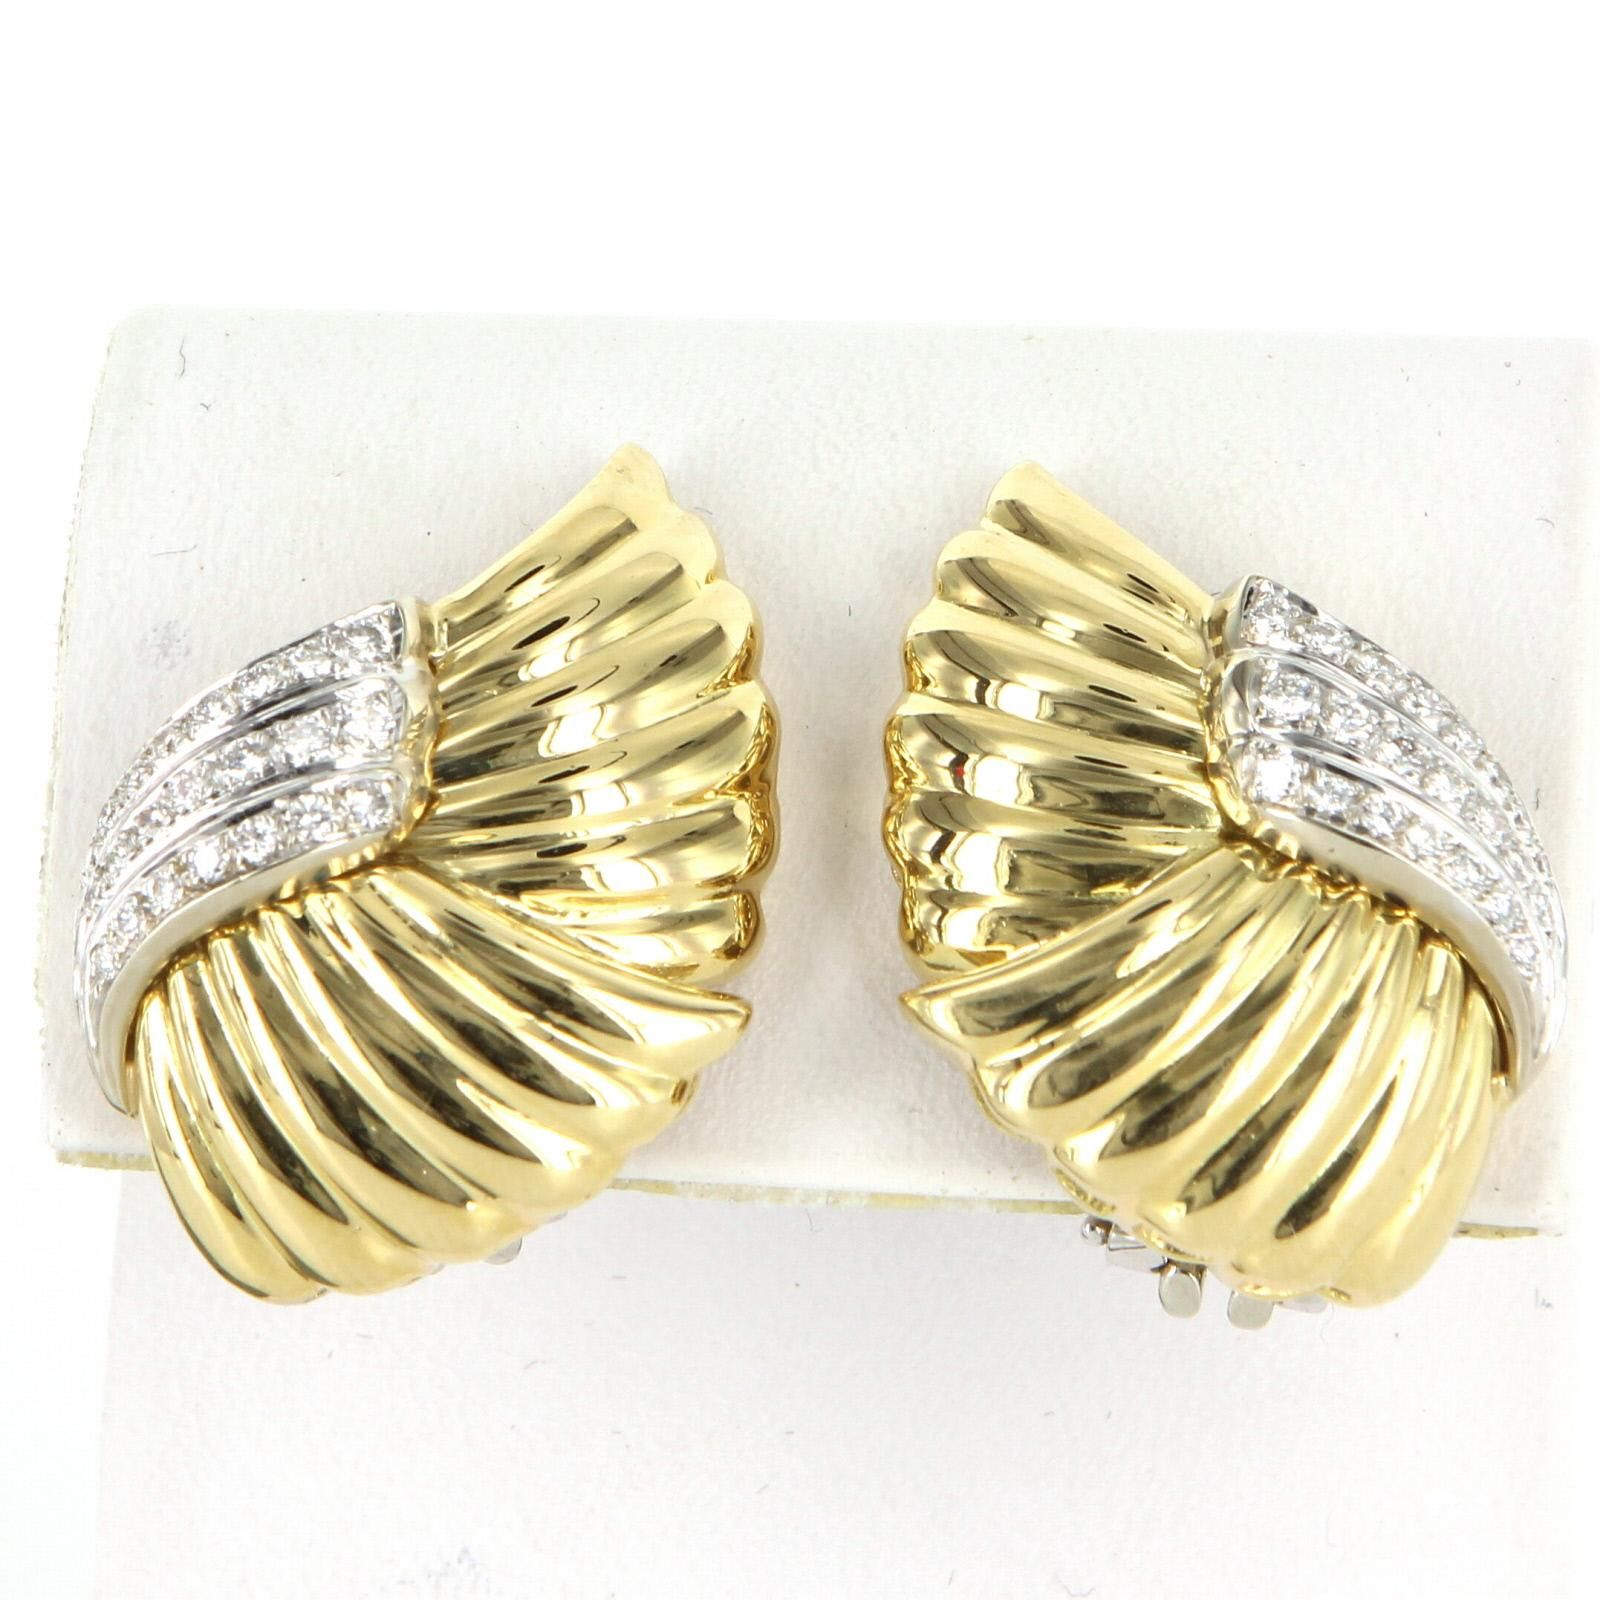 Vintage 1ct Diamond Clip Cocktail Earrings 18 Karat Yellow Gold Estate Fine Jewelry